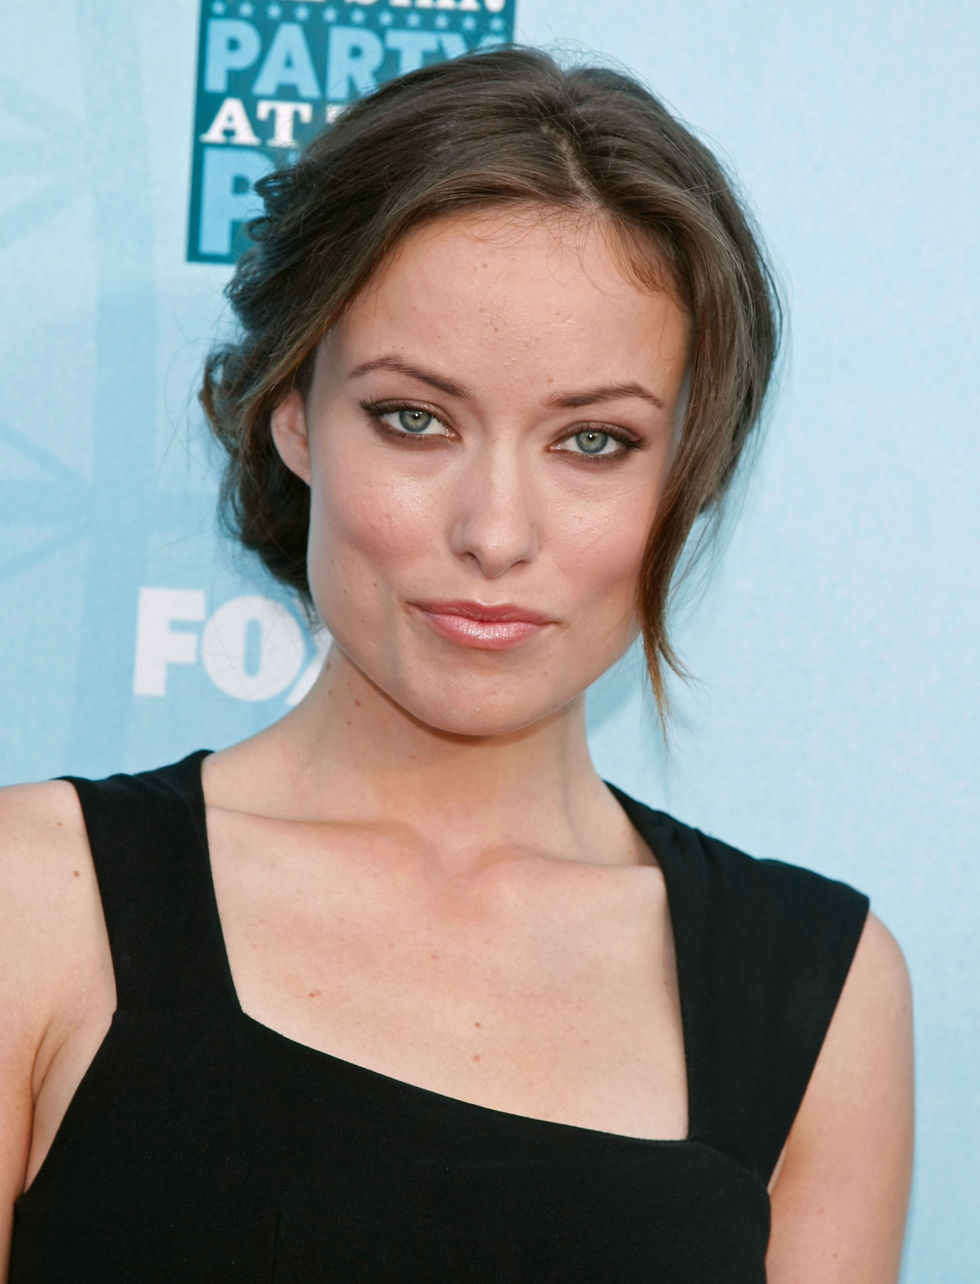 olivia-wilde-fox-all-star-party-in-santa-monica-01